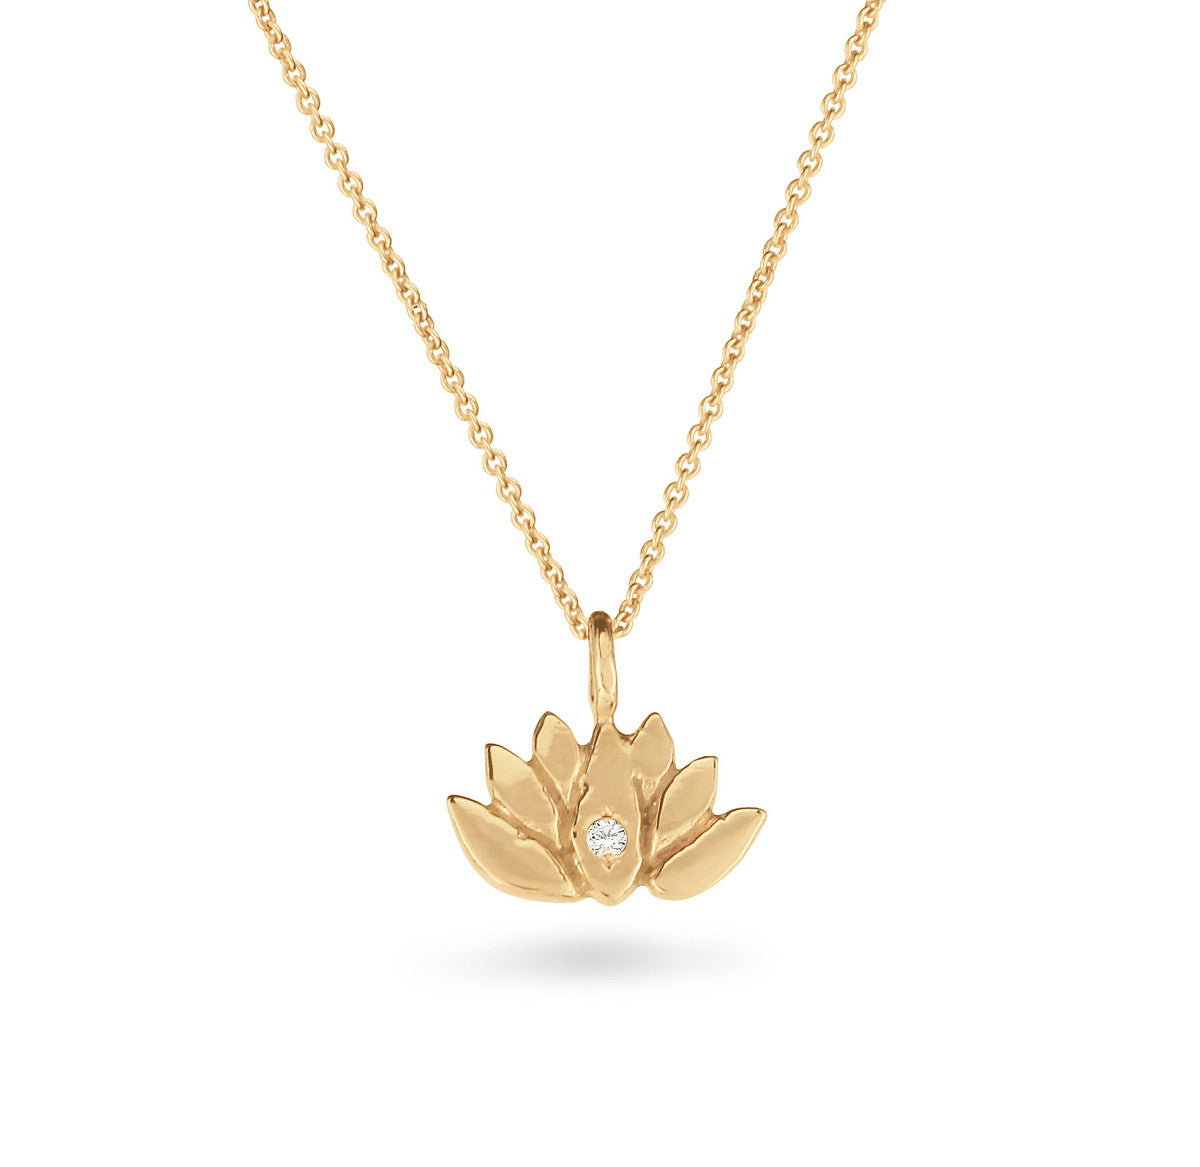 Lotus flower annmarie dercole jewelry lotus flower izmirmasajfo